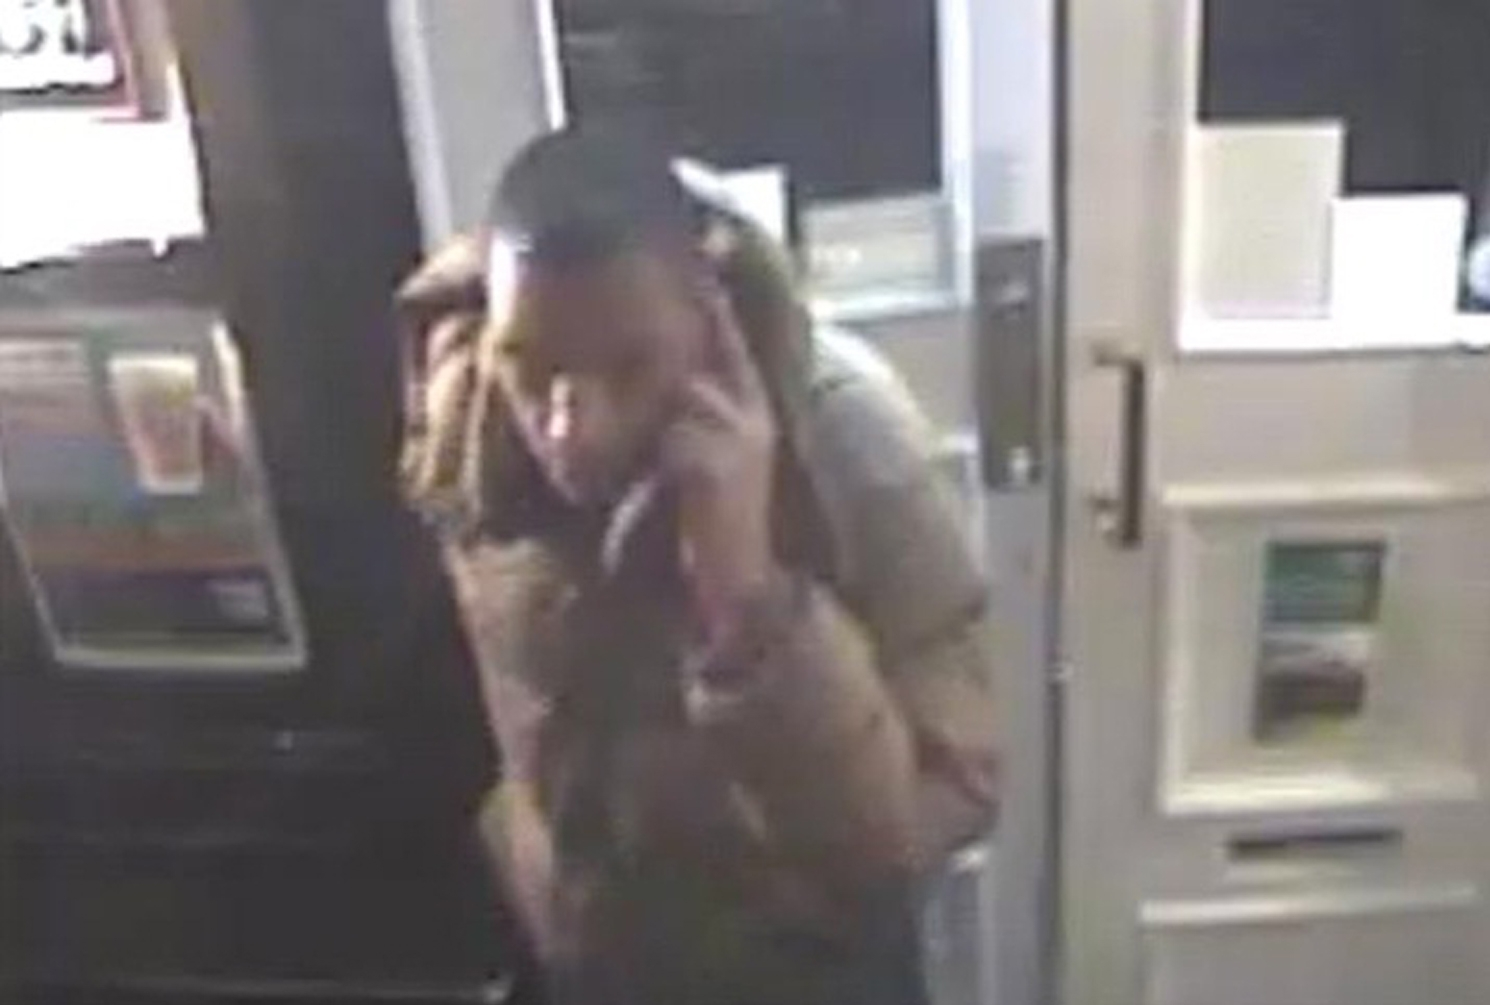 VIDEO: Caught on camera - the thief stealing £5k from pub safe